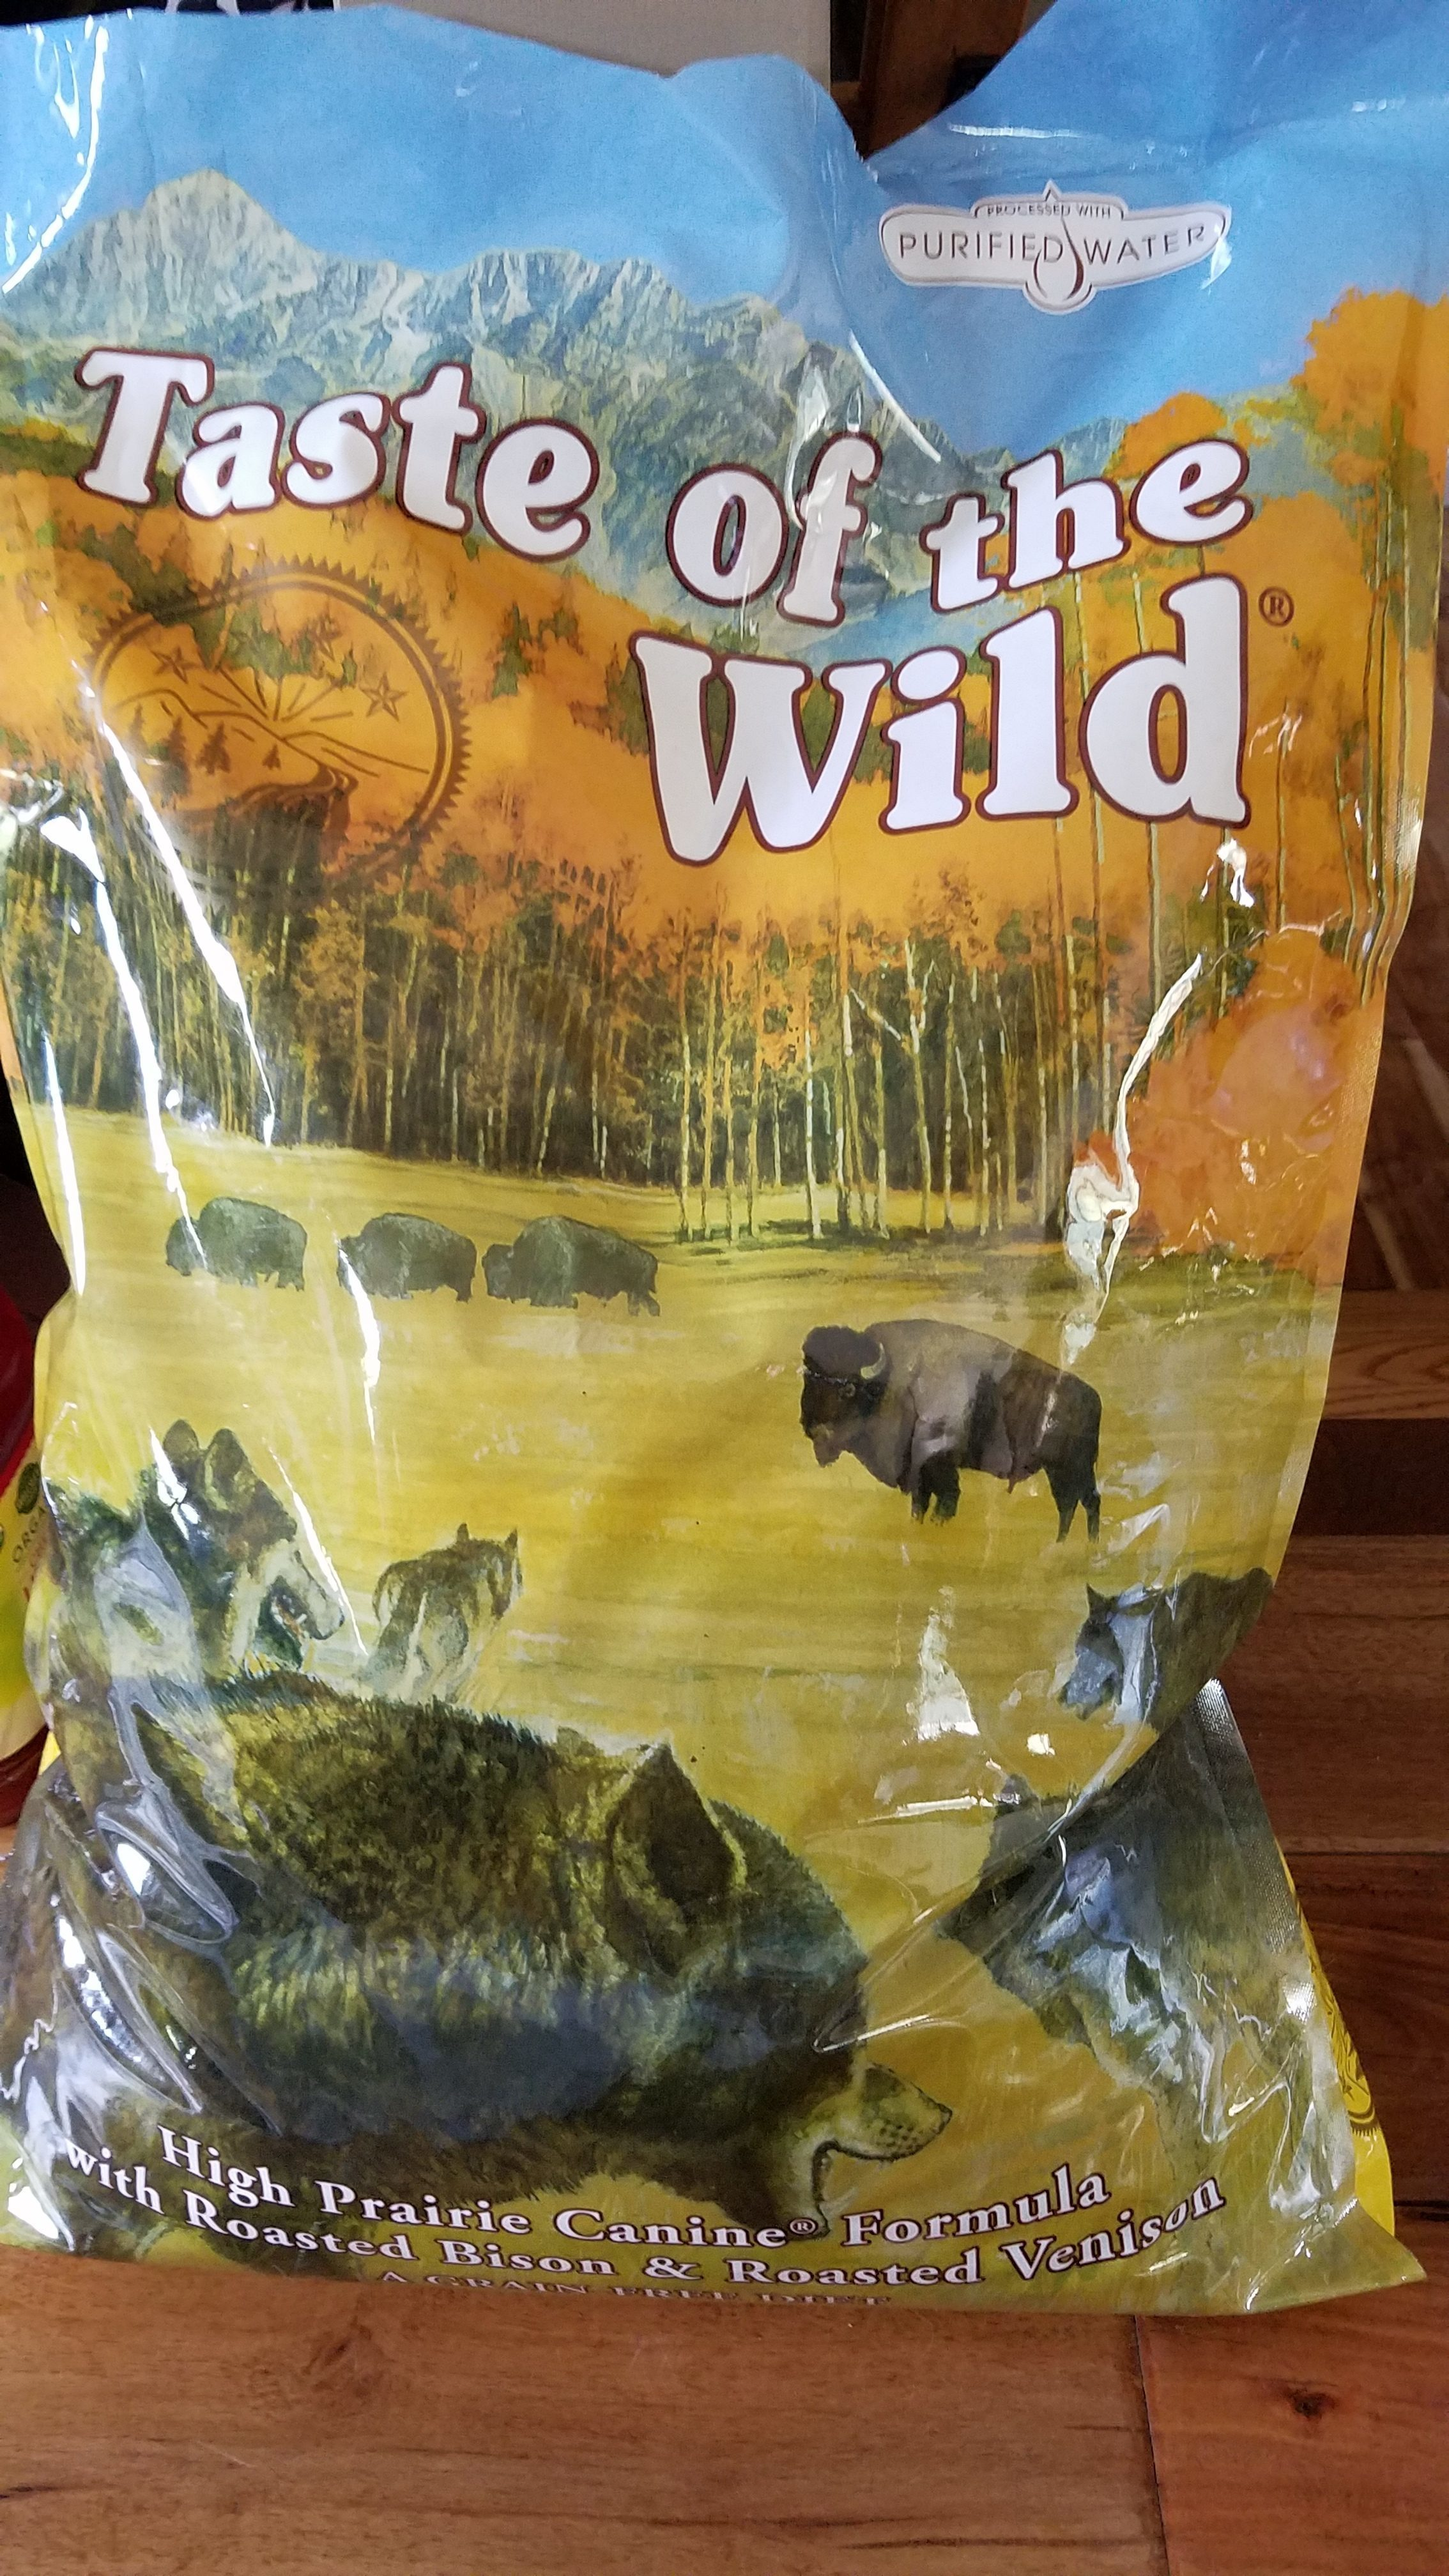 Taste Of The Wild Dog Food Reviews >> Top 190 Reviews and Complaints about Taste of the Wild